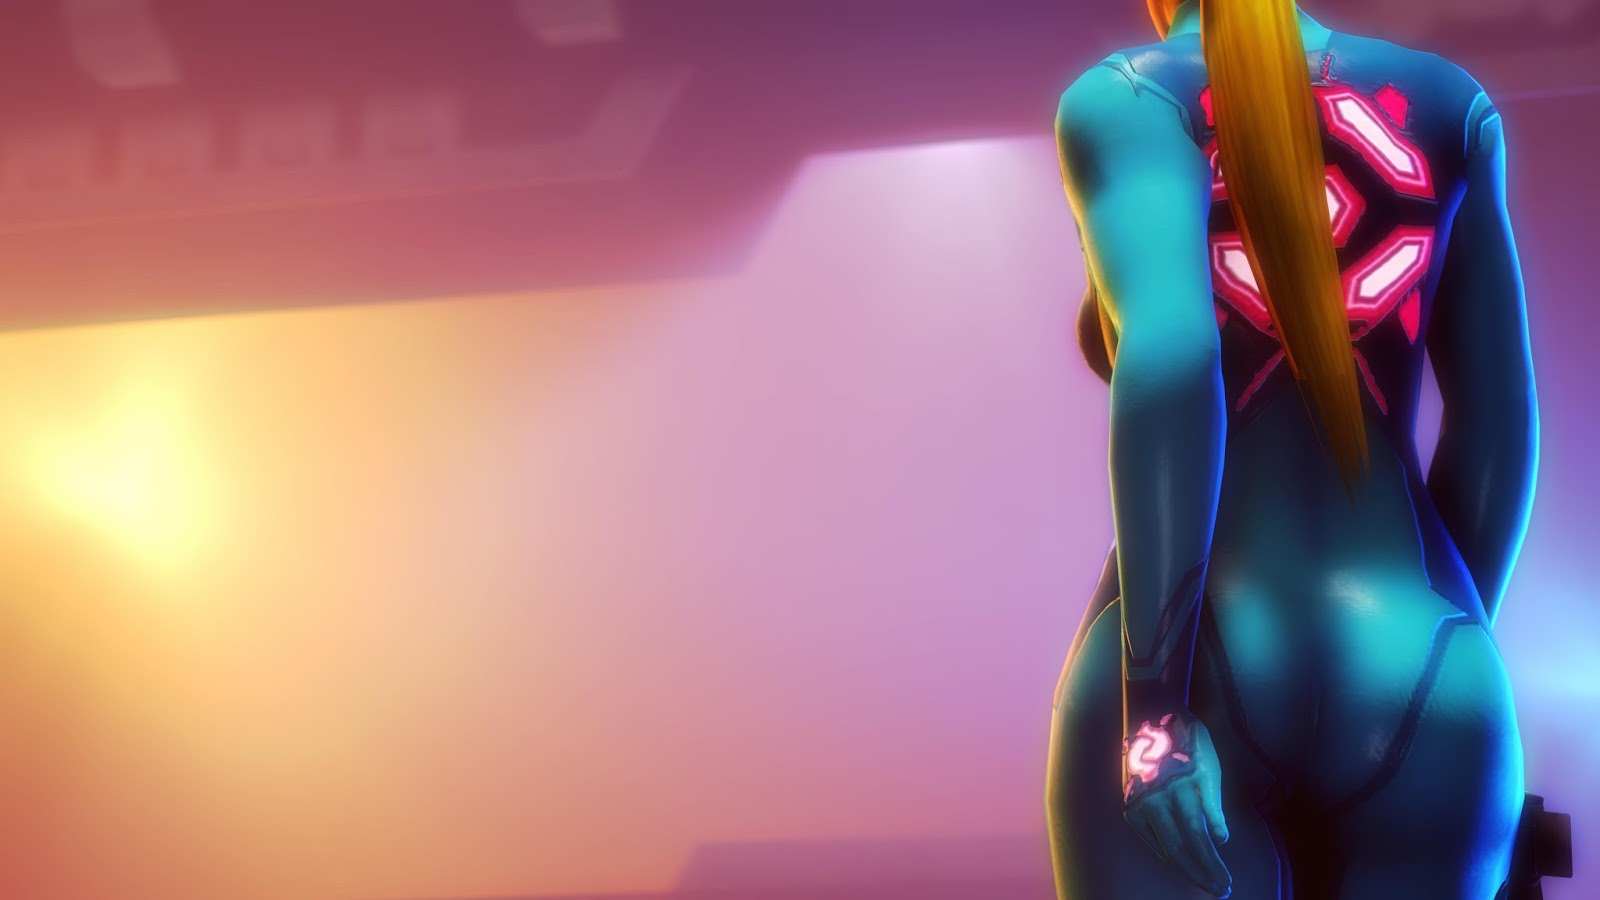 Iphone X Wallpaper Samus Aran 4k 632204 Hd Wallpaper